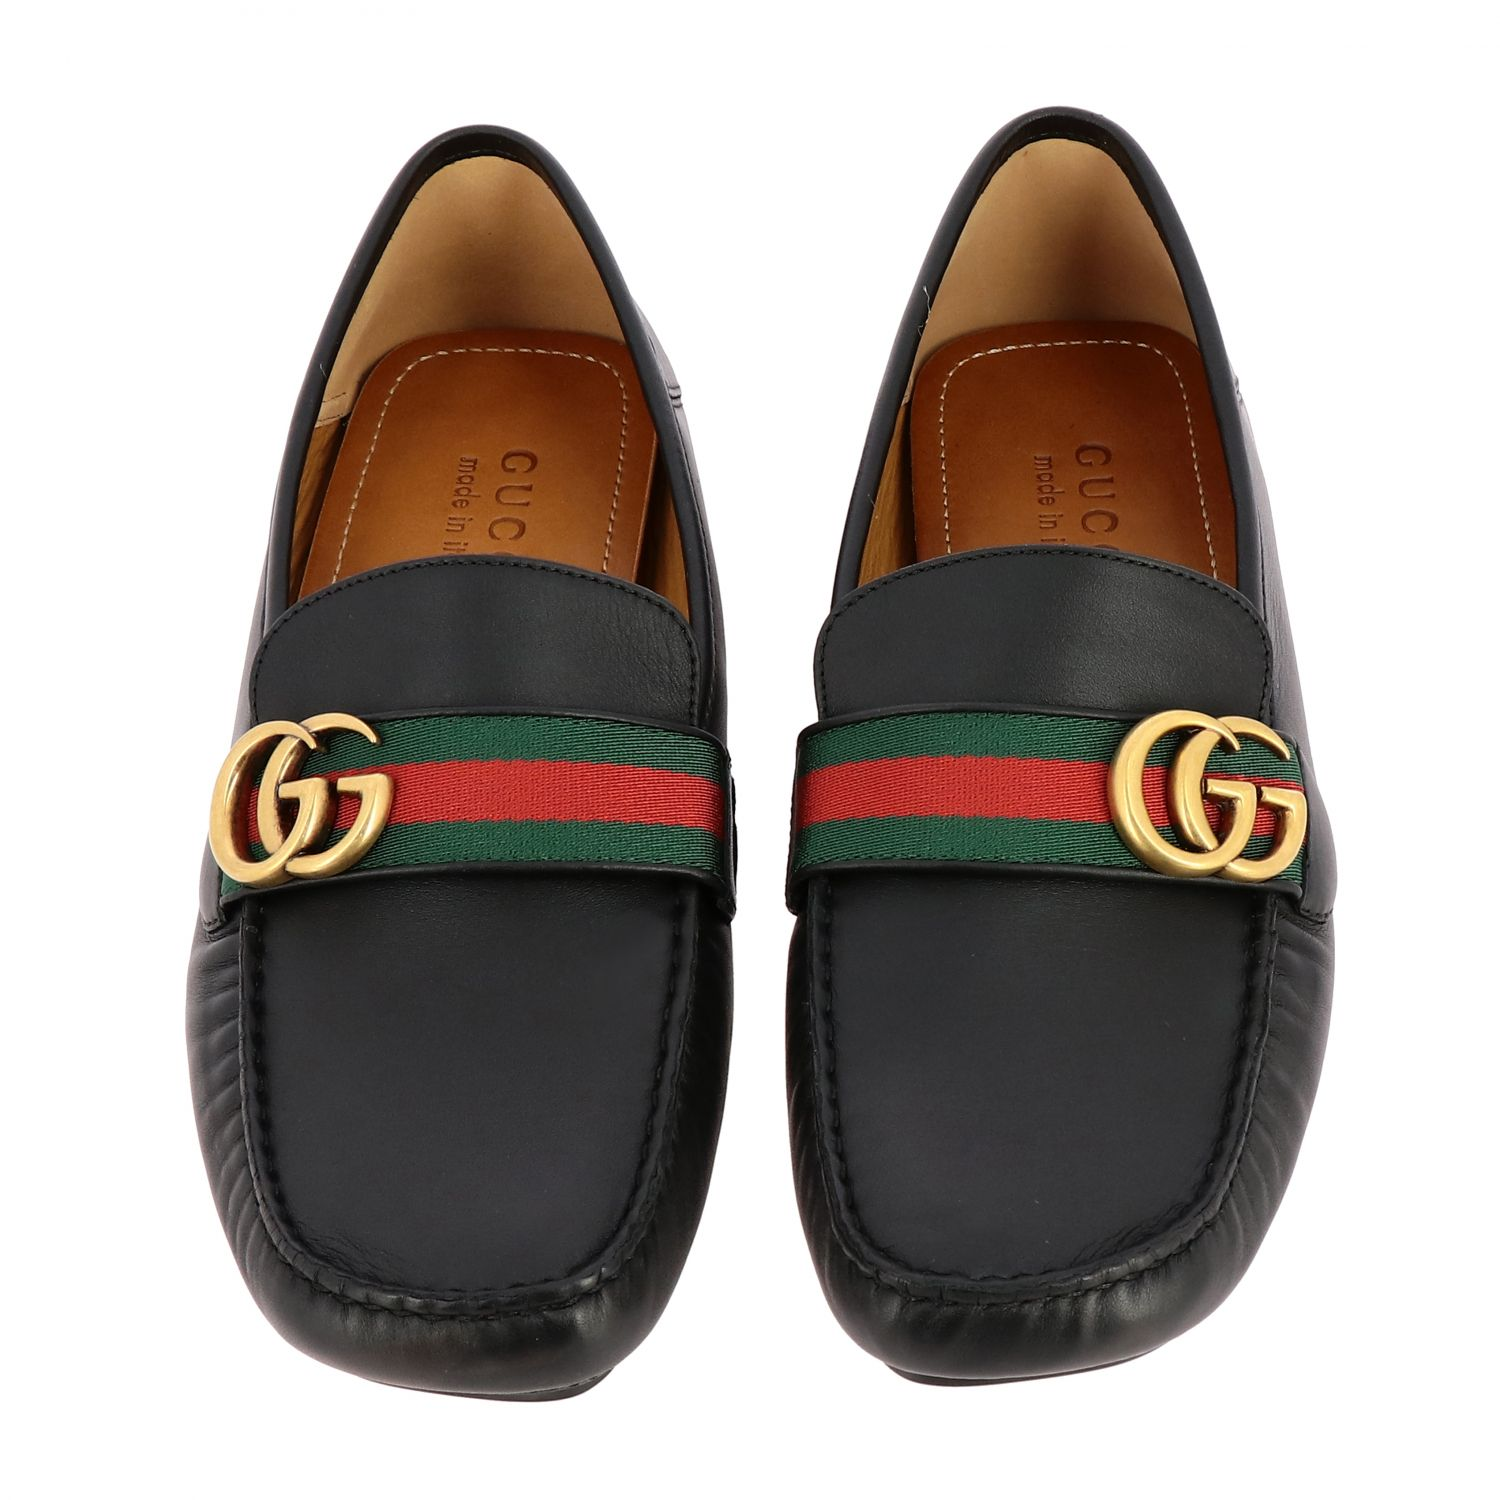 Gucci Noel driver moccasin in leather with Web buckle and GG Marmont monogram black 3